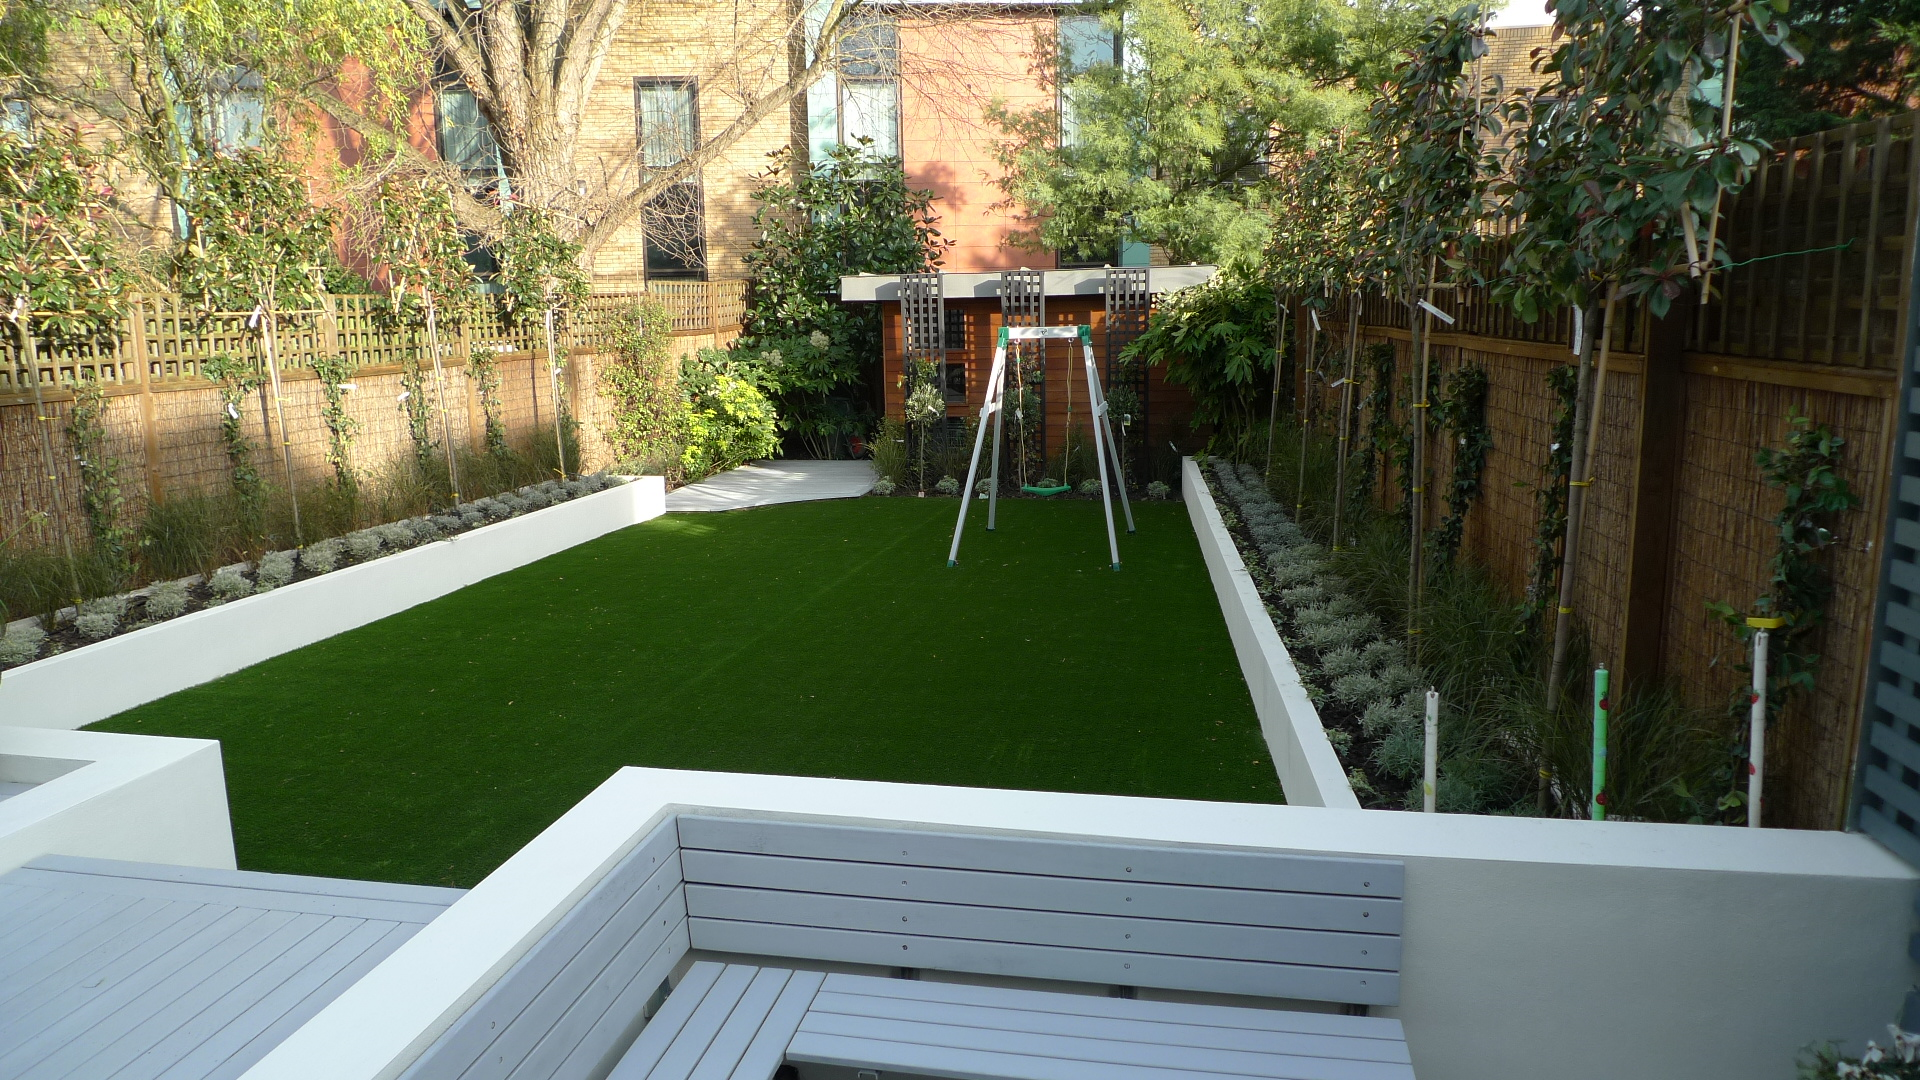 Modern garden design ideas london london garden design for Latest garden design ideas